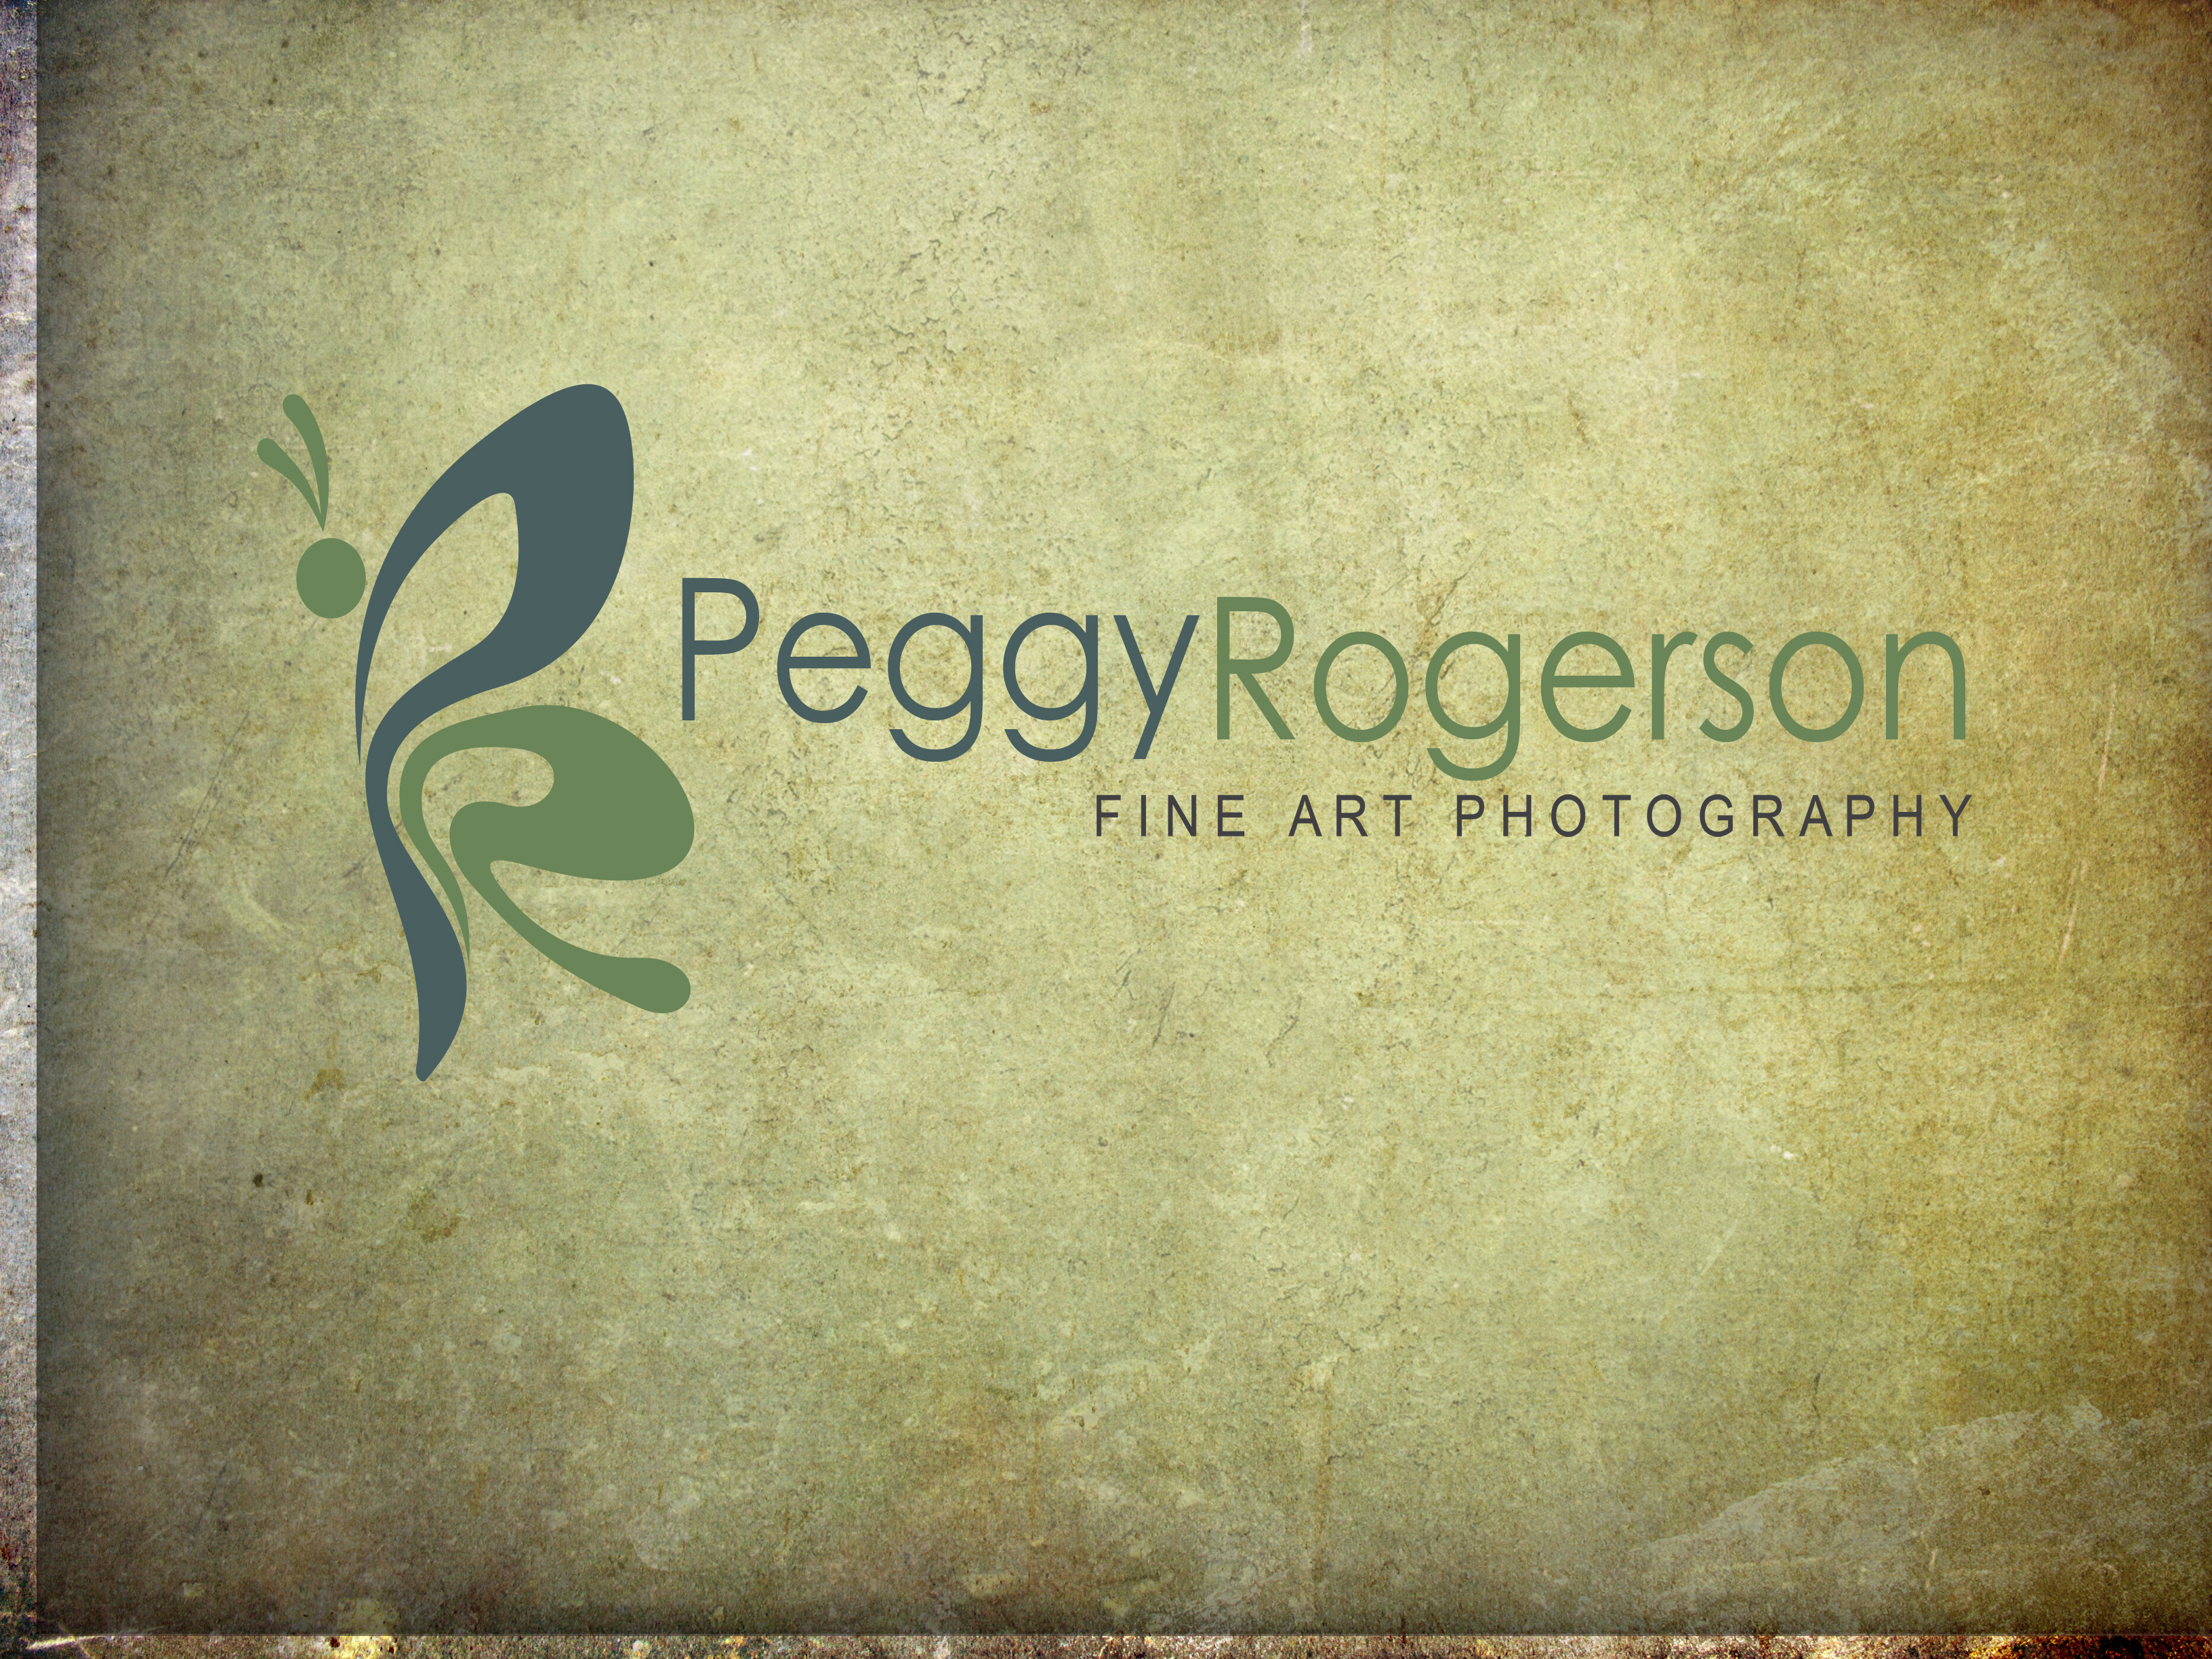 Peggy Rogerson Fine Art Photography